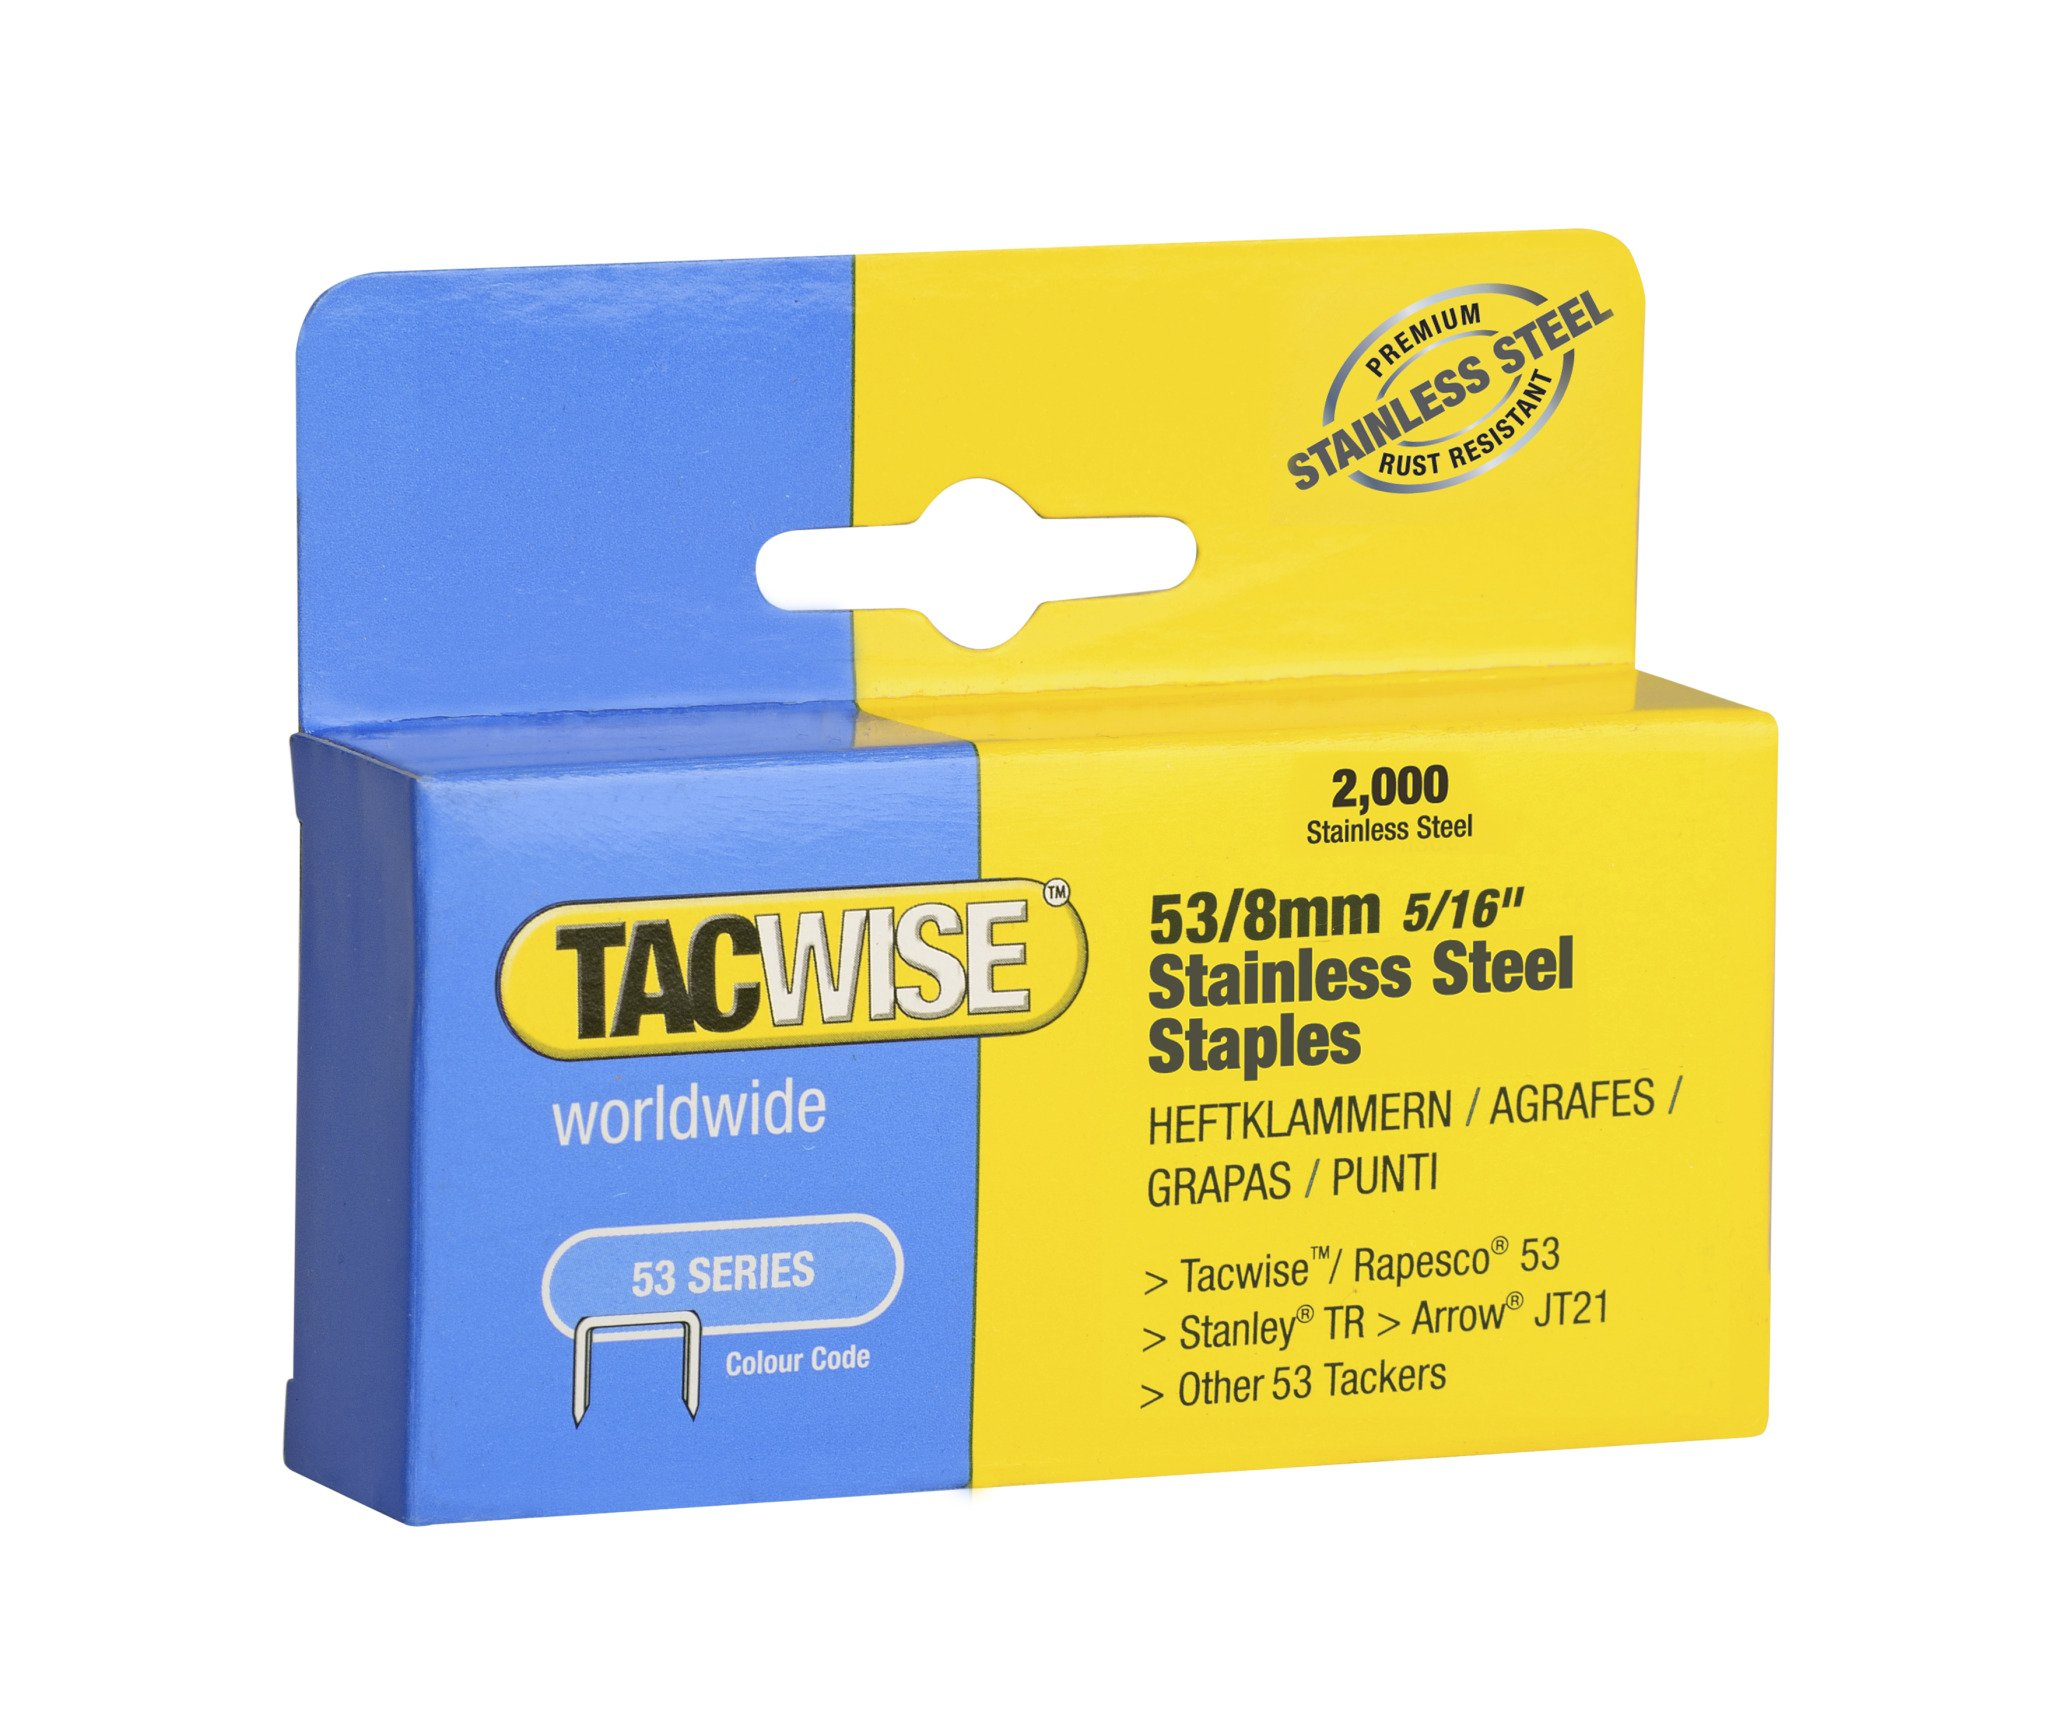 Tacwise 1269 53/8 mm Stainless Steel Staples for